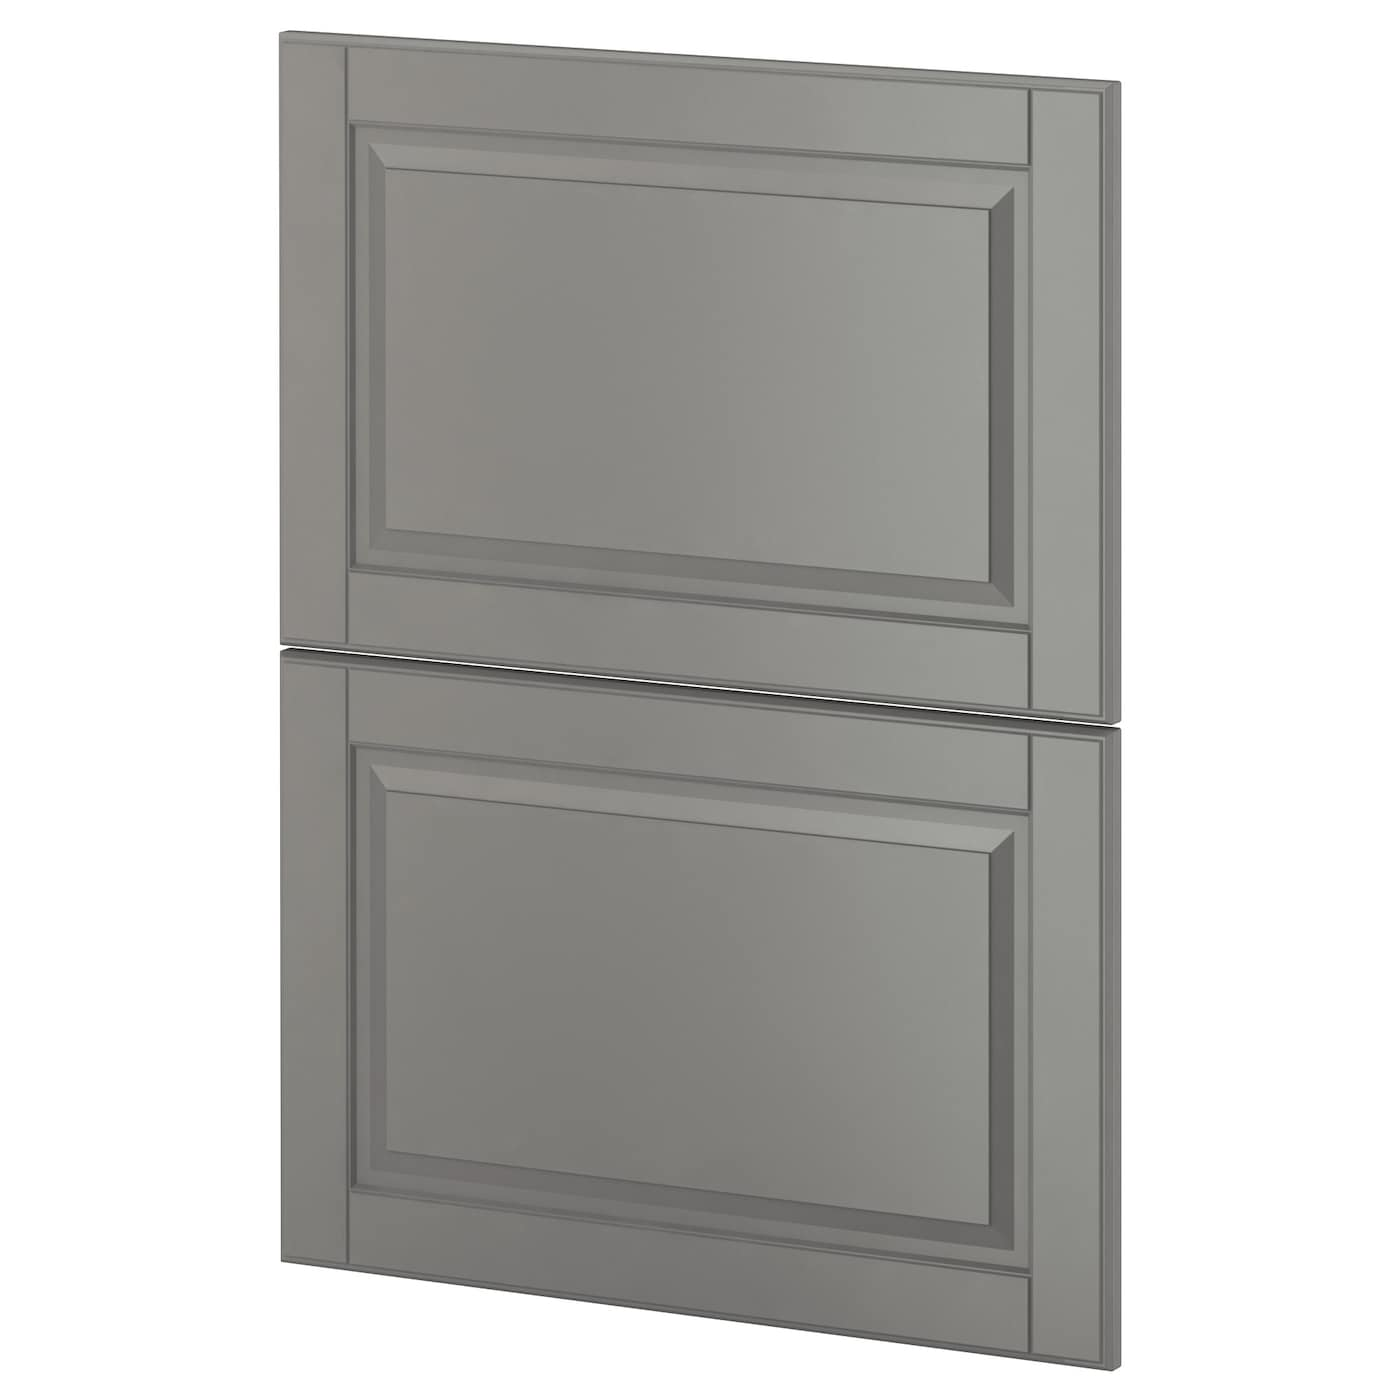 metod 2 fronts for dishwasher bodbyn grey 60 cm ikea. Black Bedroom Furniture Sets. Home Design Ideas